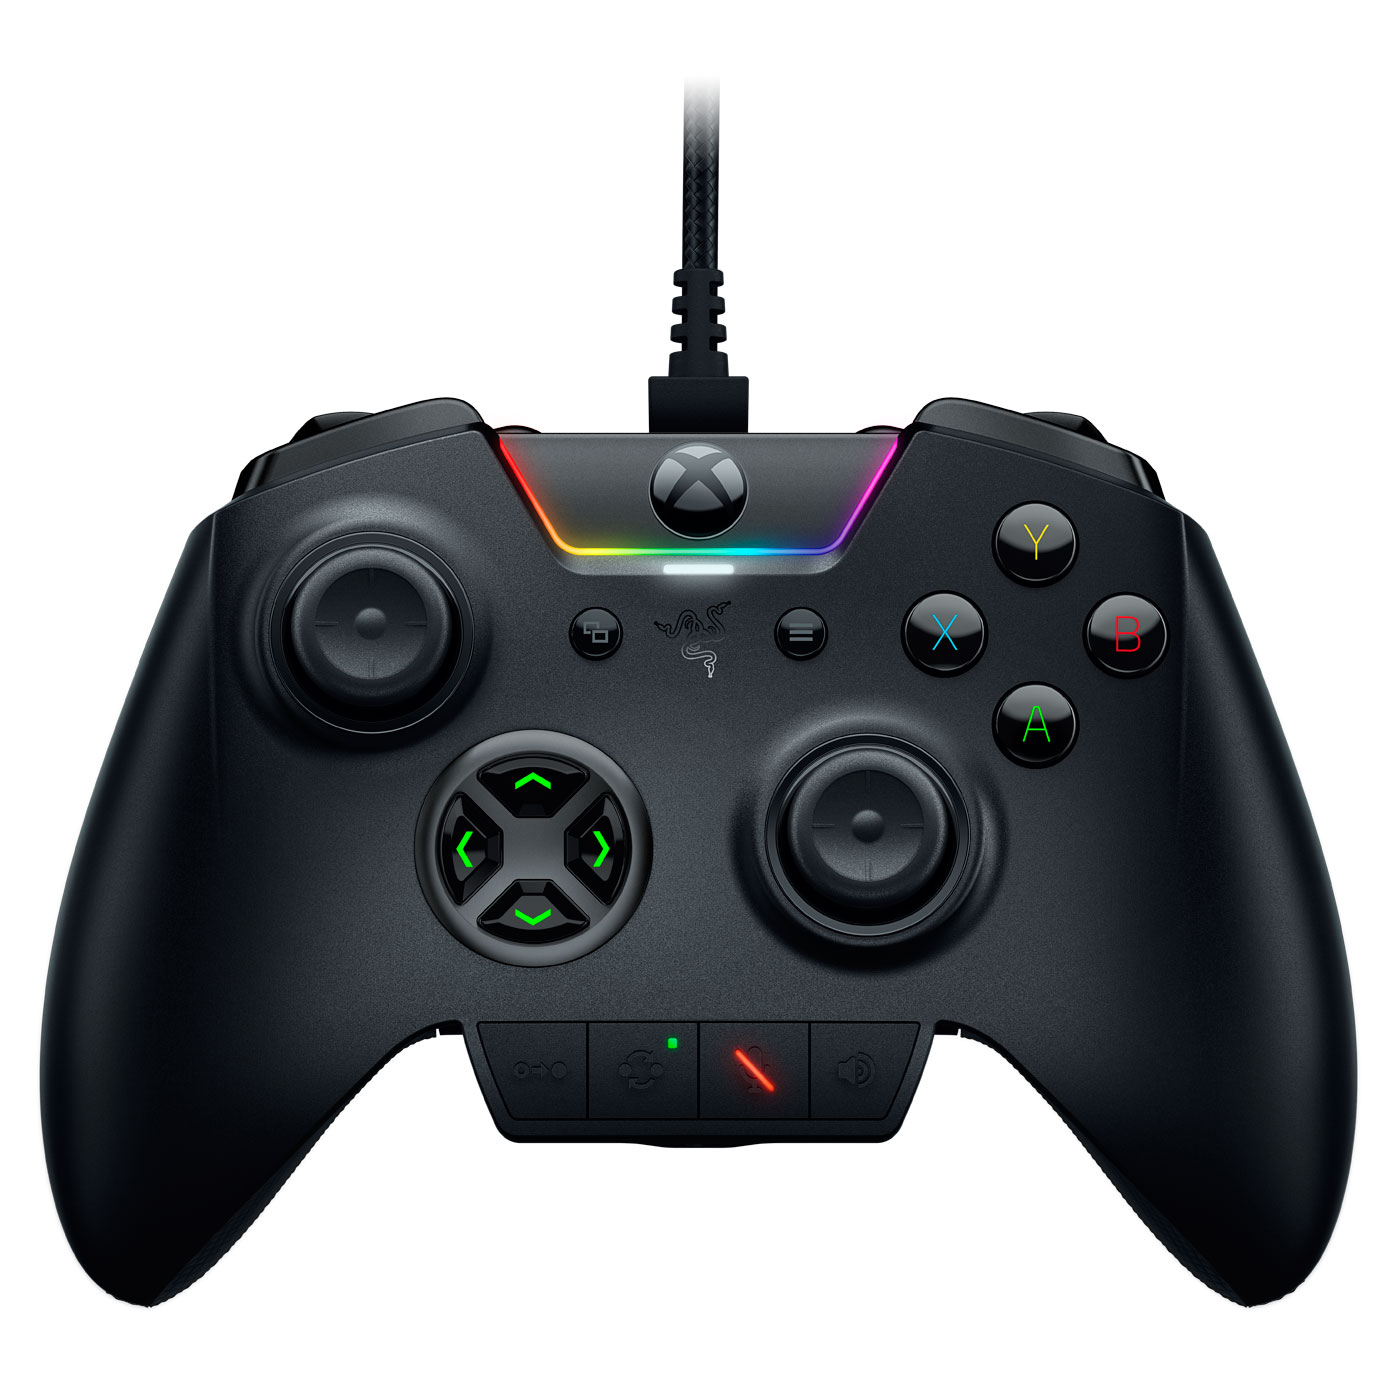 Joypad Razer Wolverine Ultimate Manette personnalisable avec éclairage Chroma (compatible Xbox One / PC)